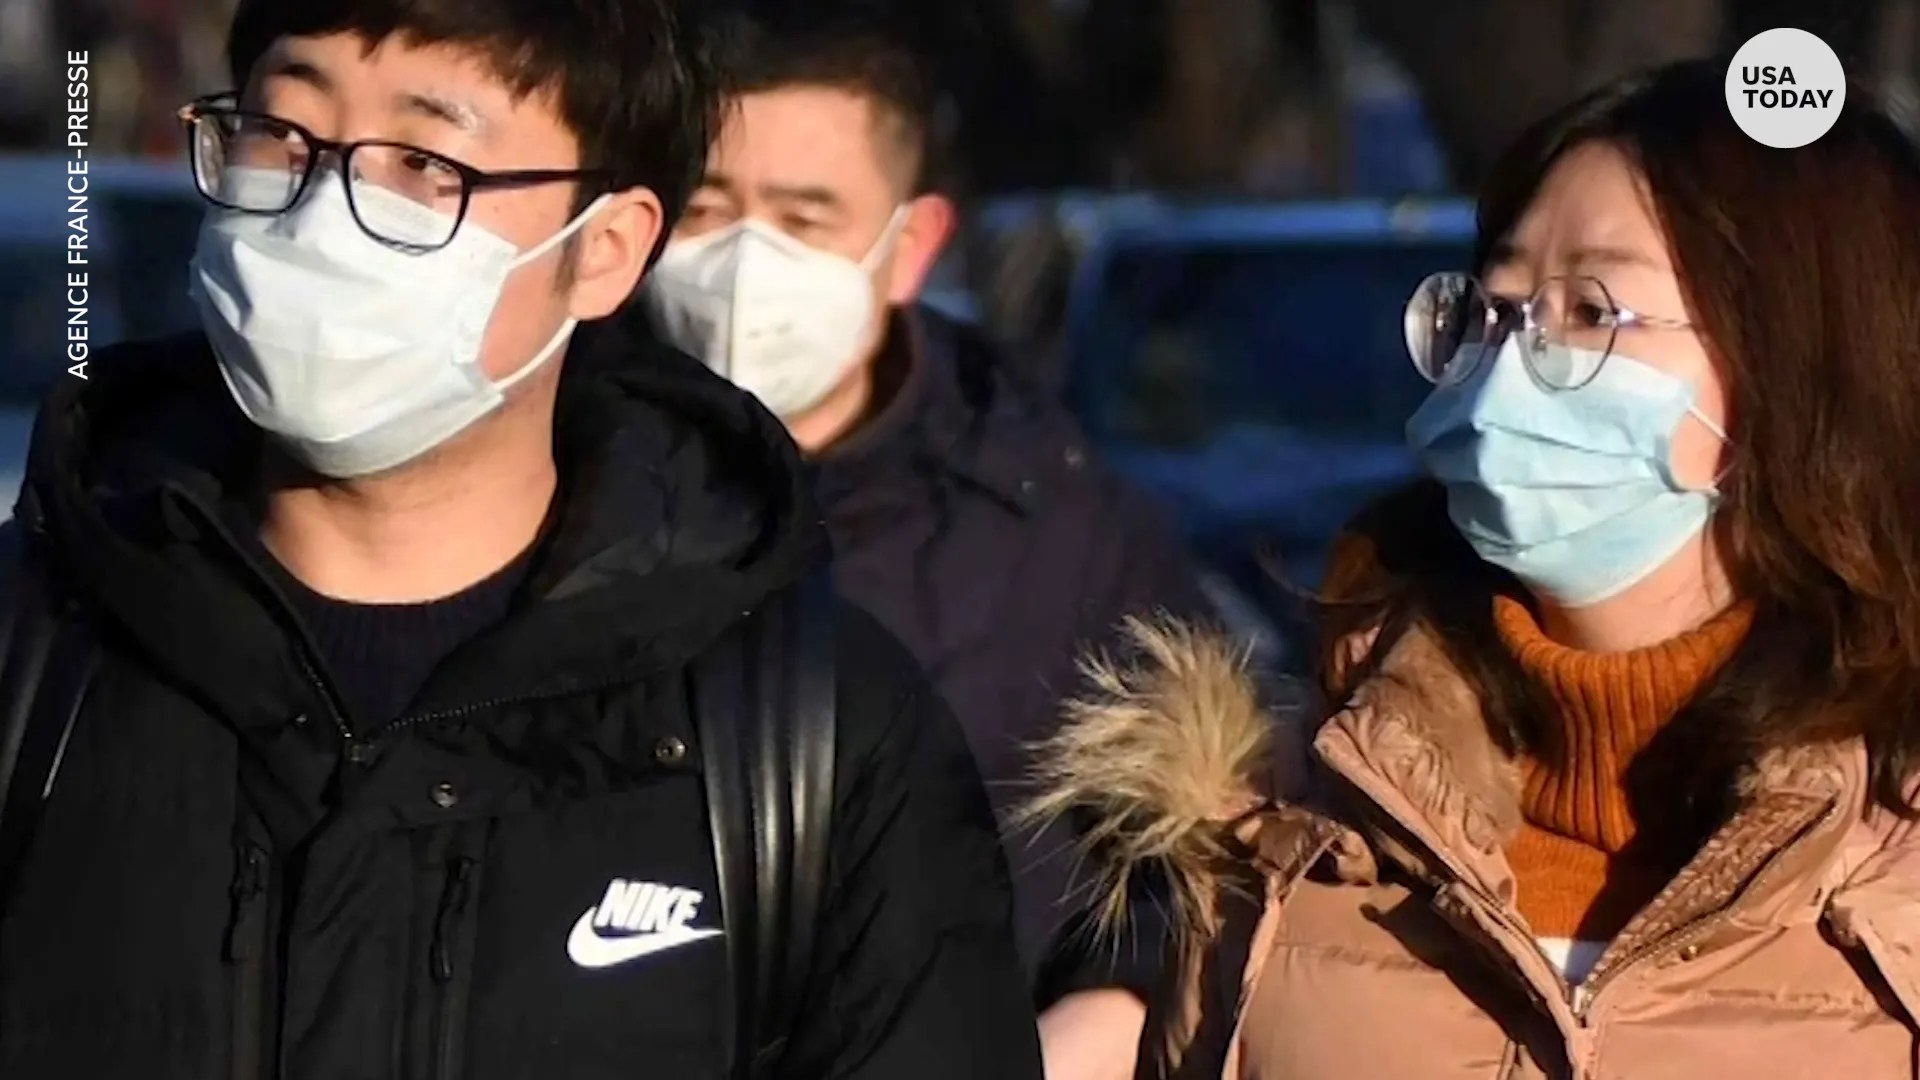 Coronavirus: Prices for masks on Amazon are surging